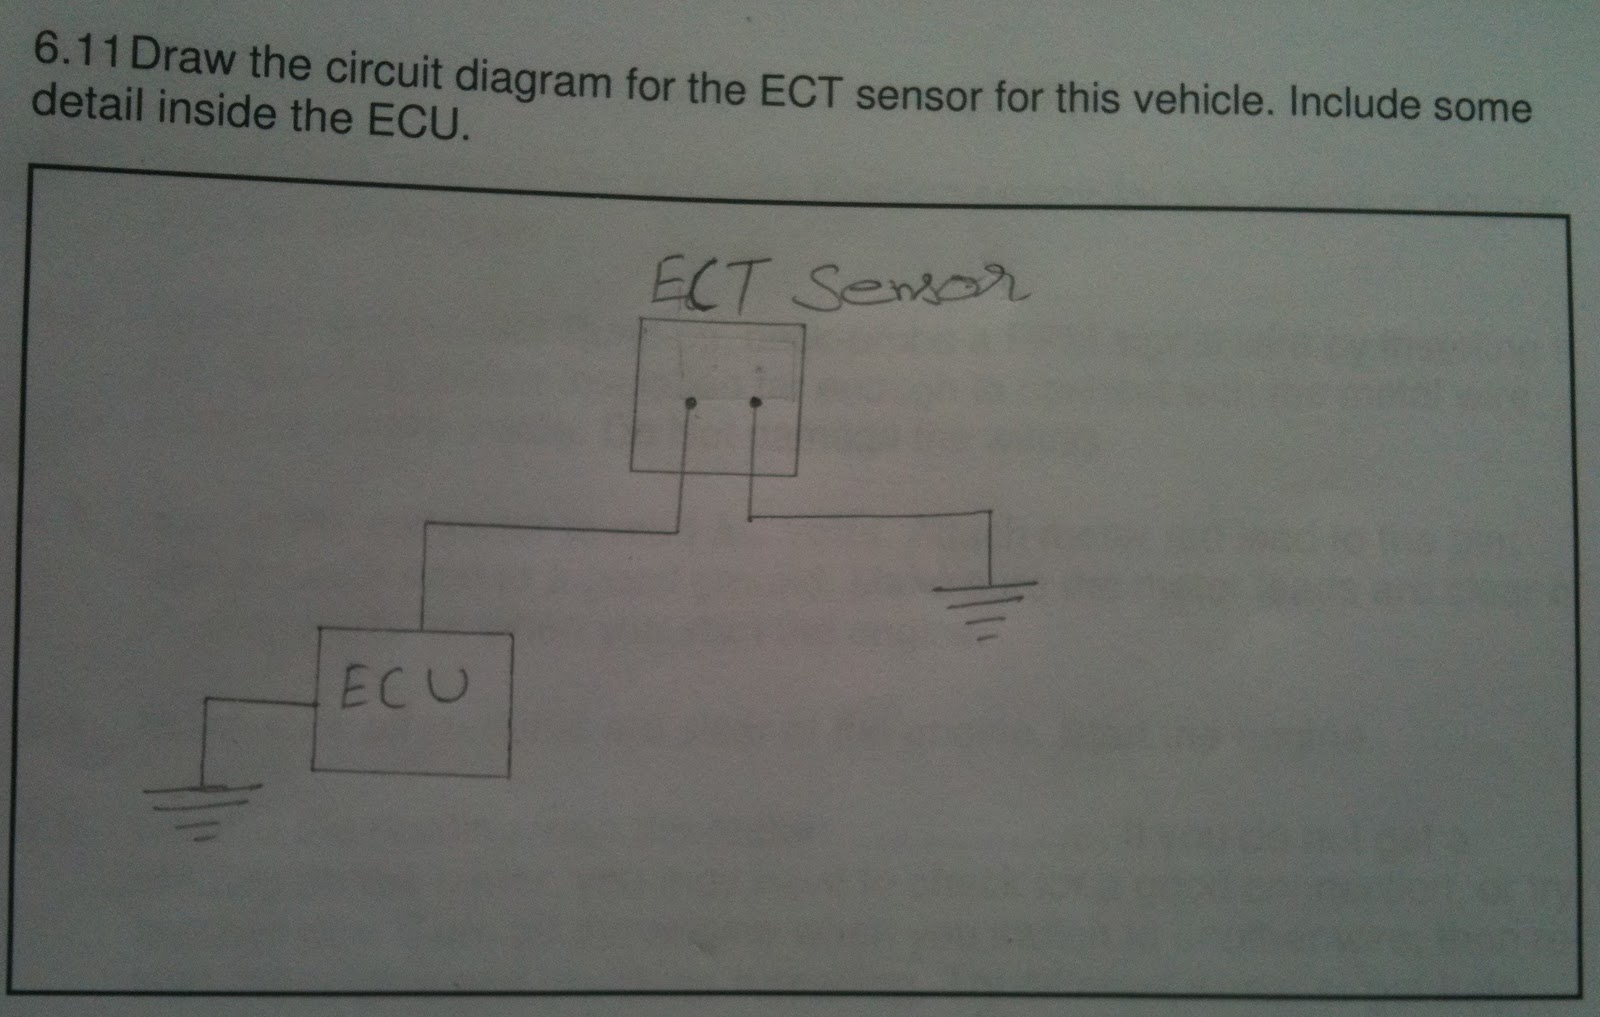 Singhs 4826 Input Sensor And Actuators On Vehicle Adjusting My Ect Wiring Diagram Q Describe How The Map Works To Tell Engine Much Air Comes Into A There Is Silicon Chip In